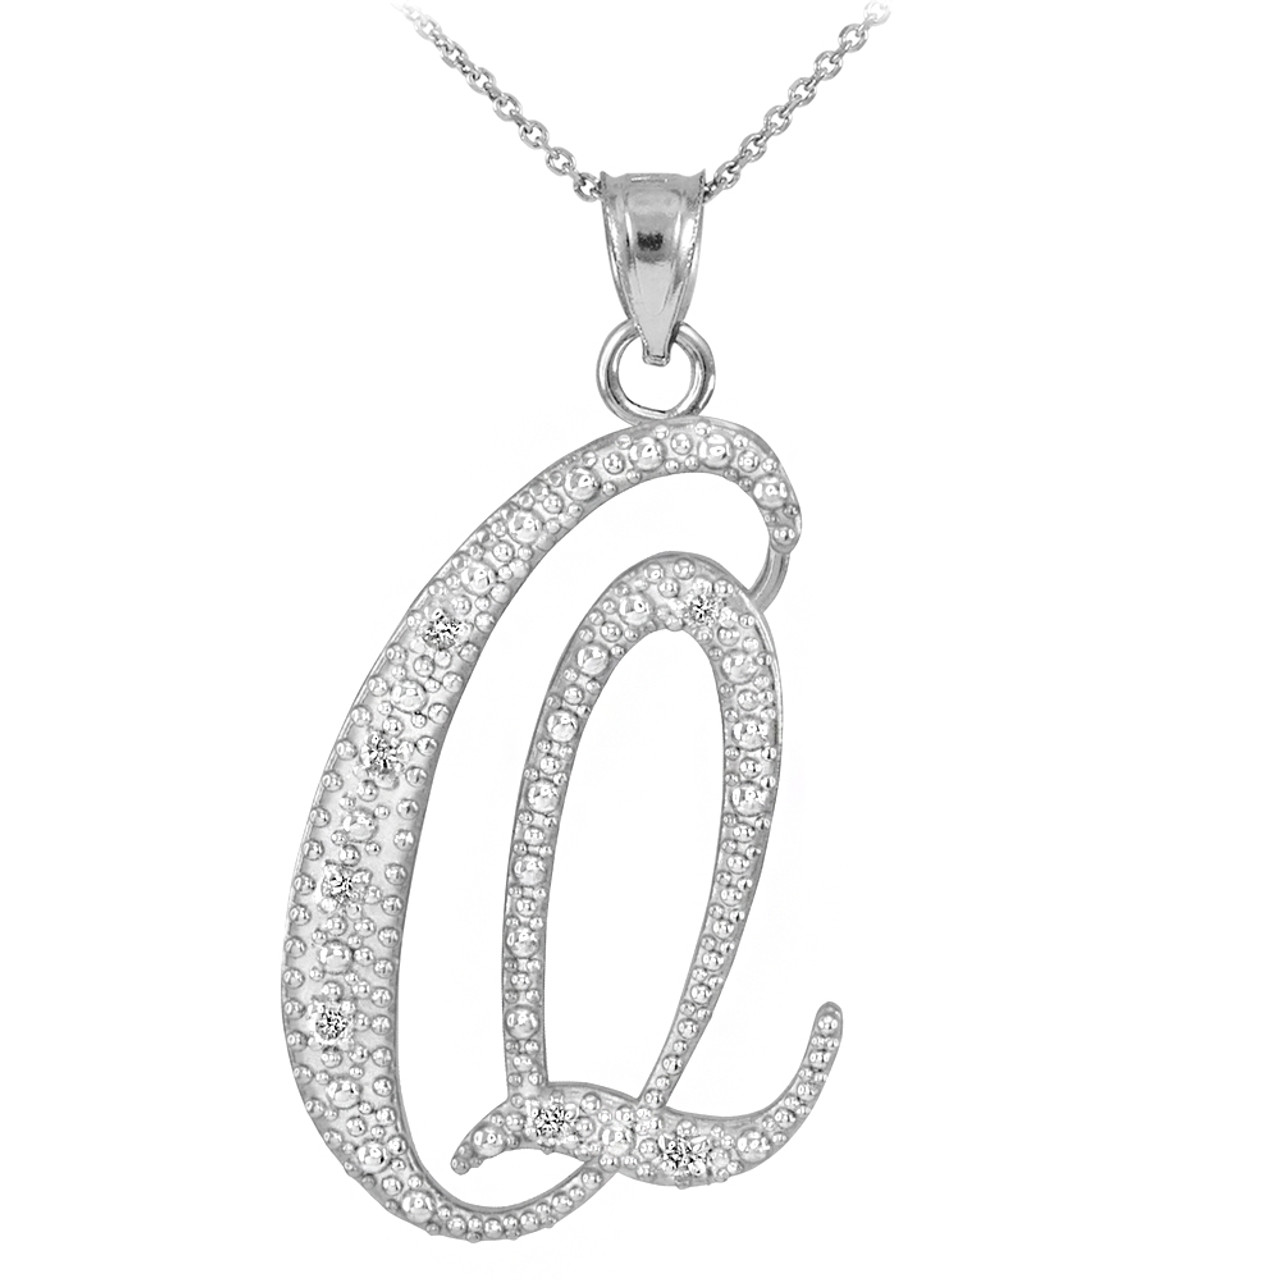 White gold letter script q diamond initial pendant necklace 14k white gold letter script q diamond initial pendant necklace mozeypictures Image collections